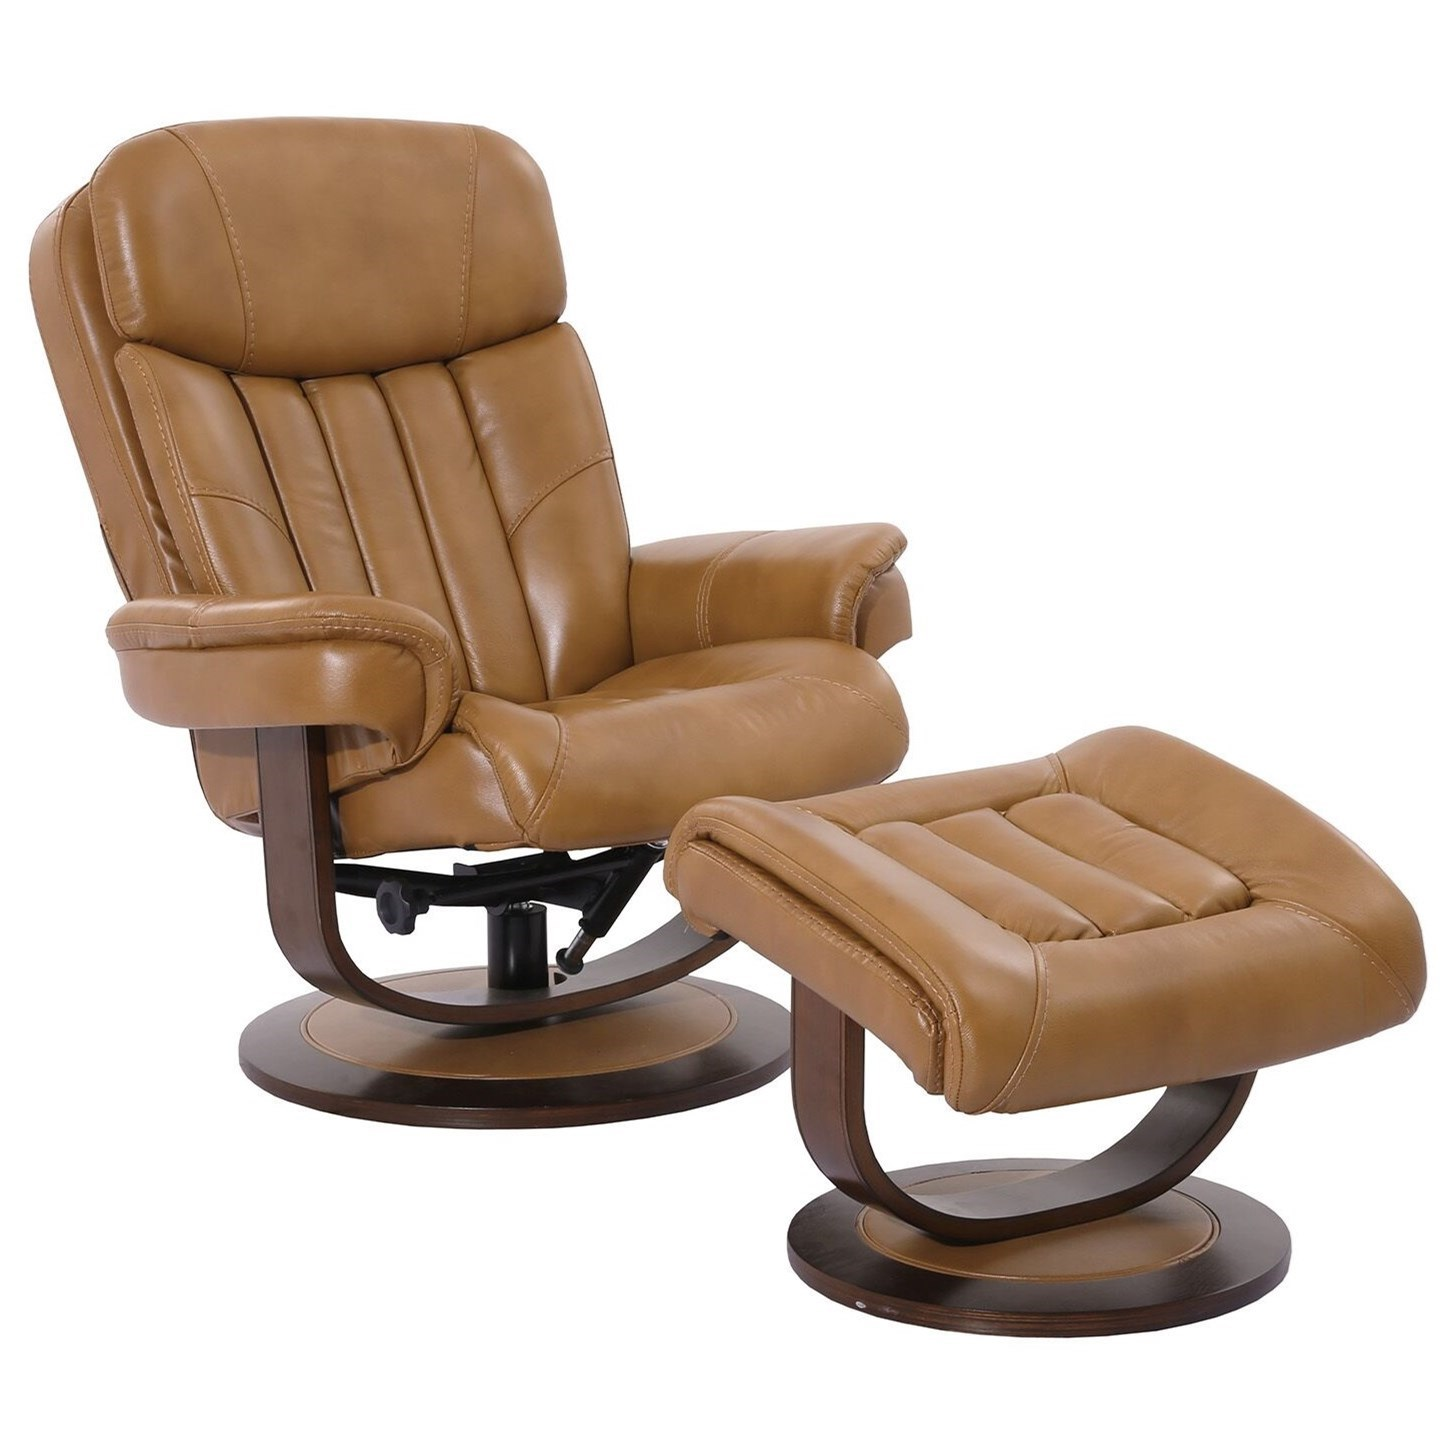 Prince Swivel Recliner & Ottoman by Parker Living at Zak's Home